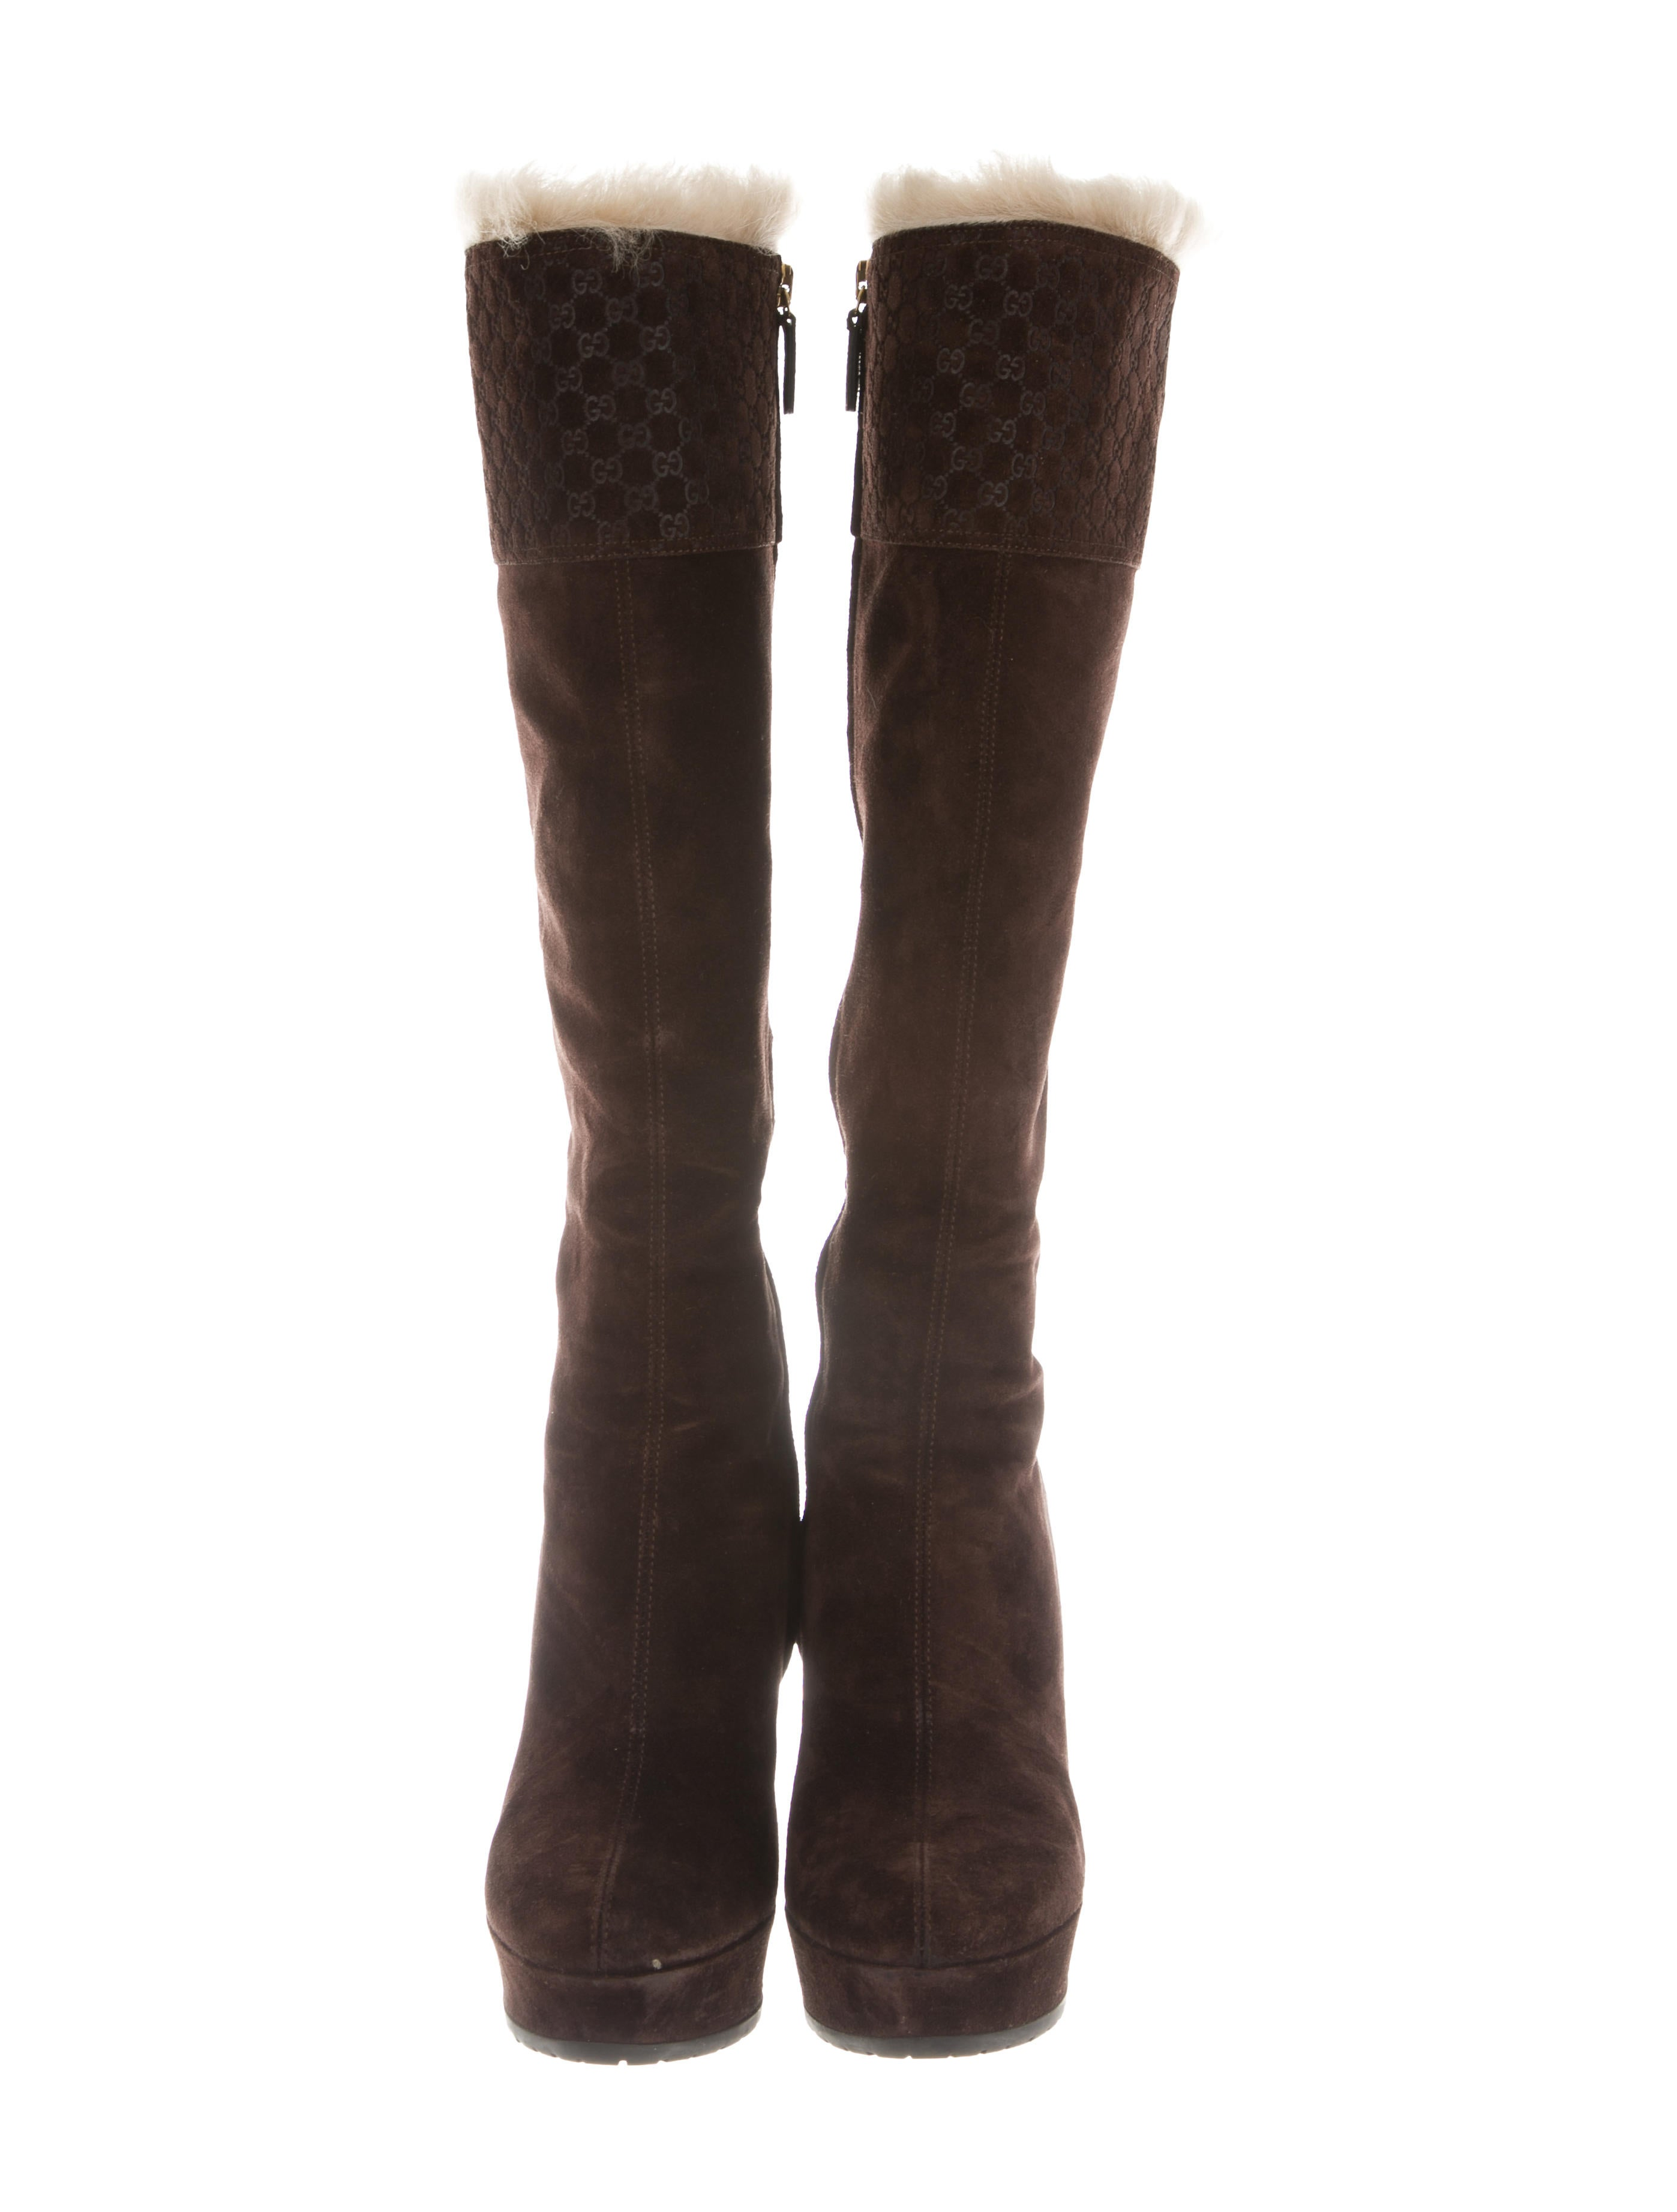 92ce75c9324351 Gucci GG Wedge Boots - Shoes - GUC211263